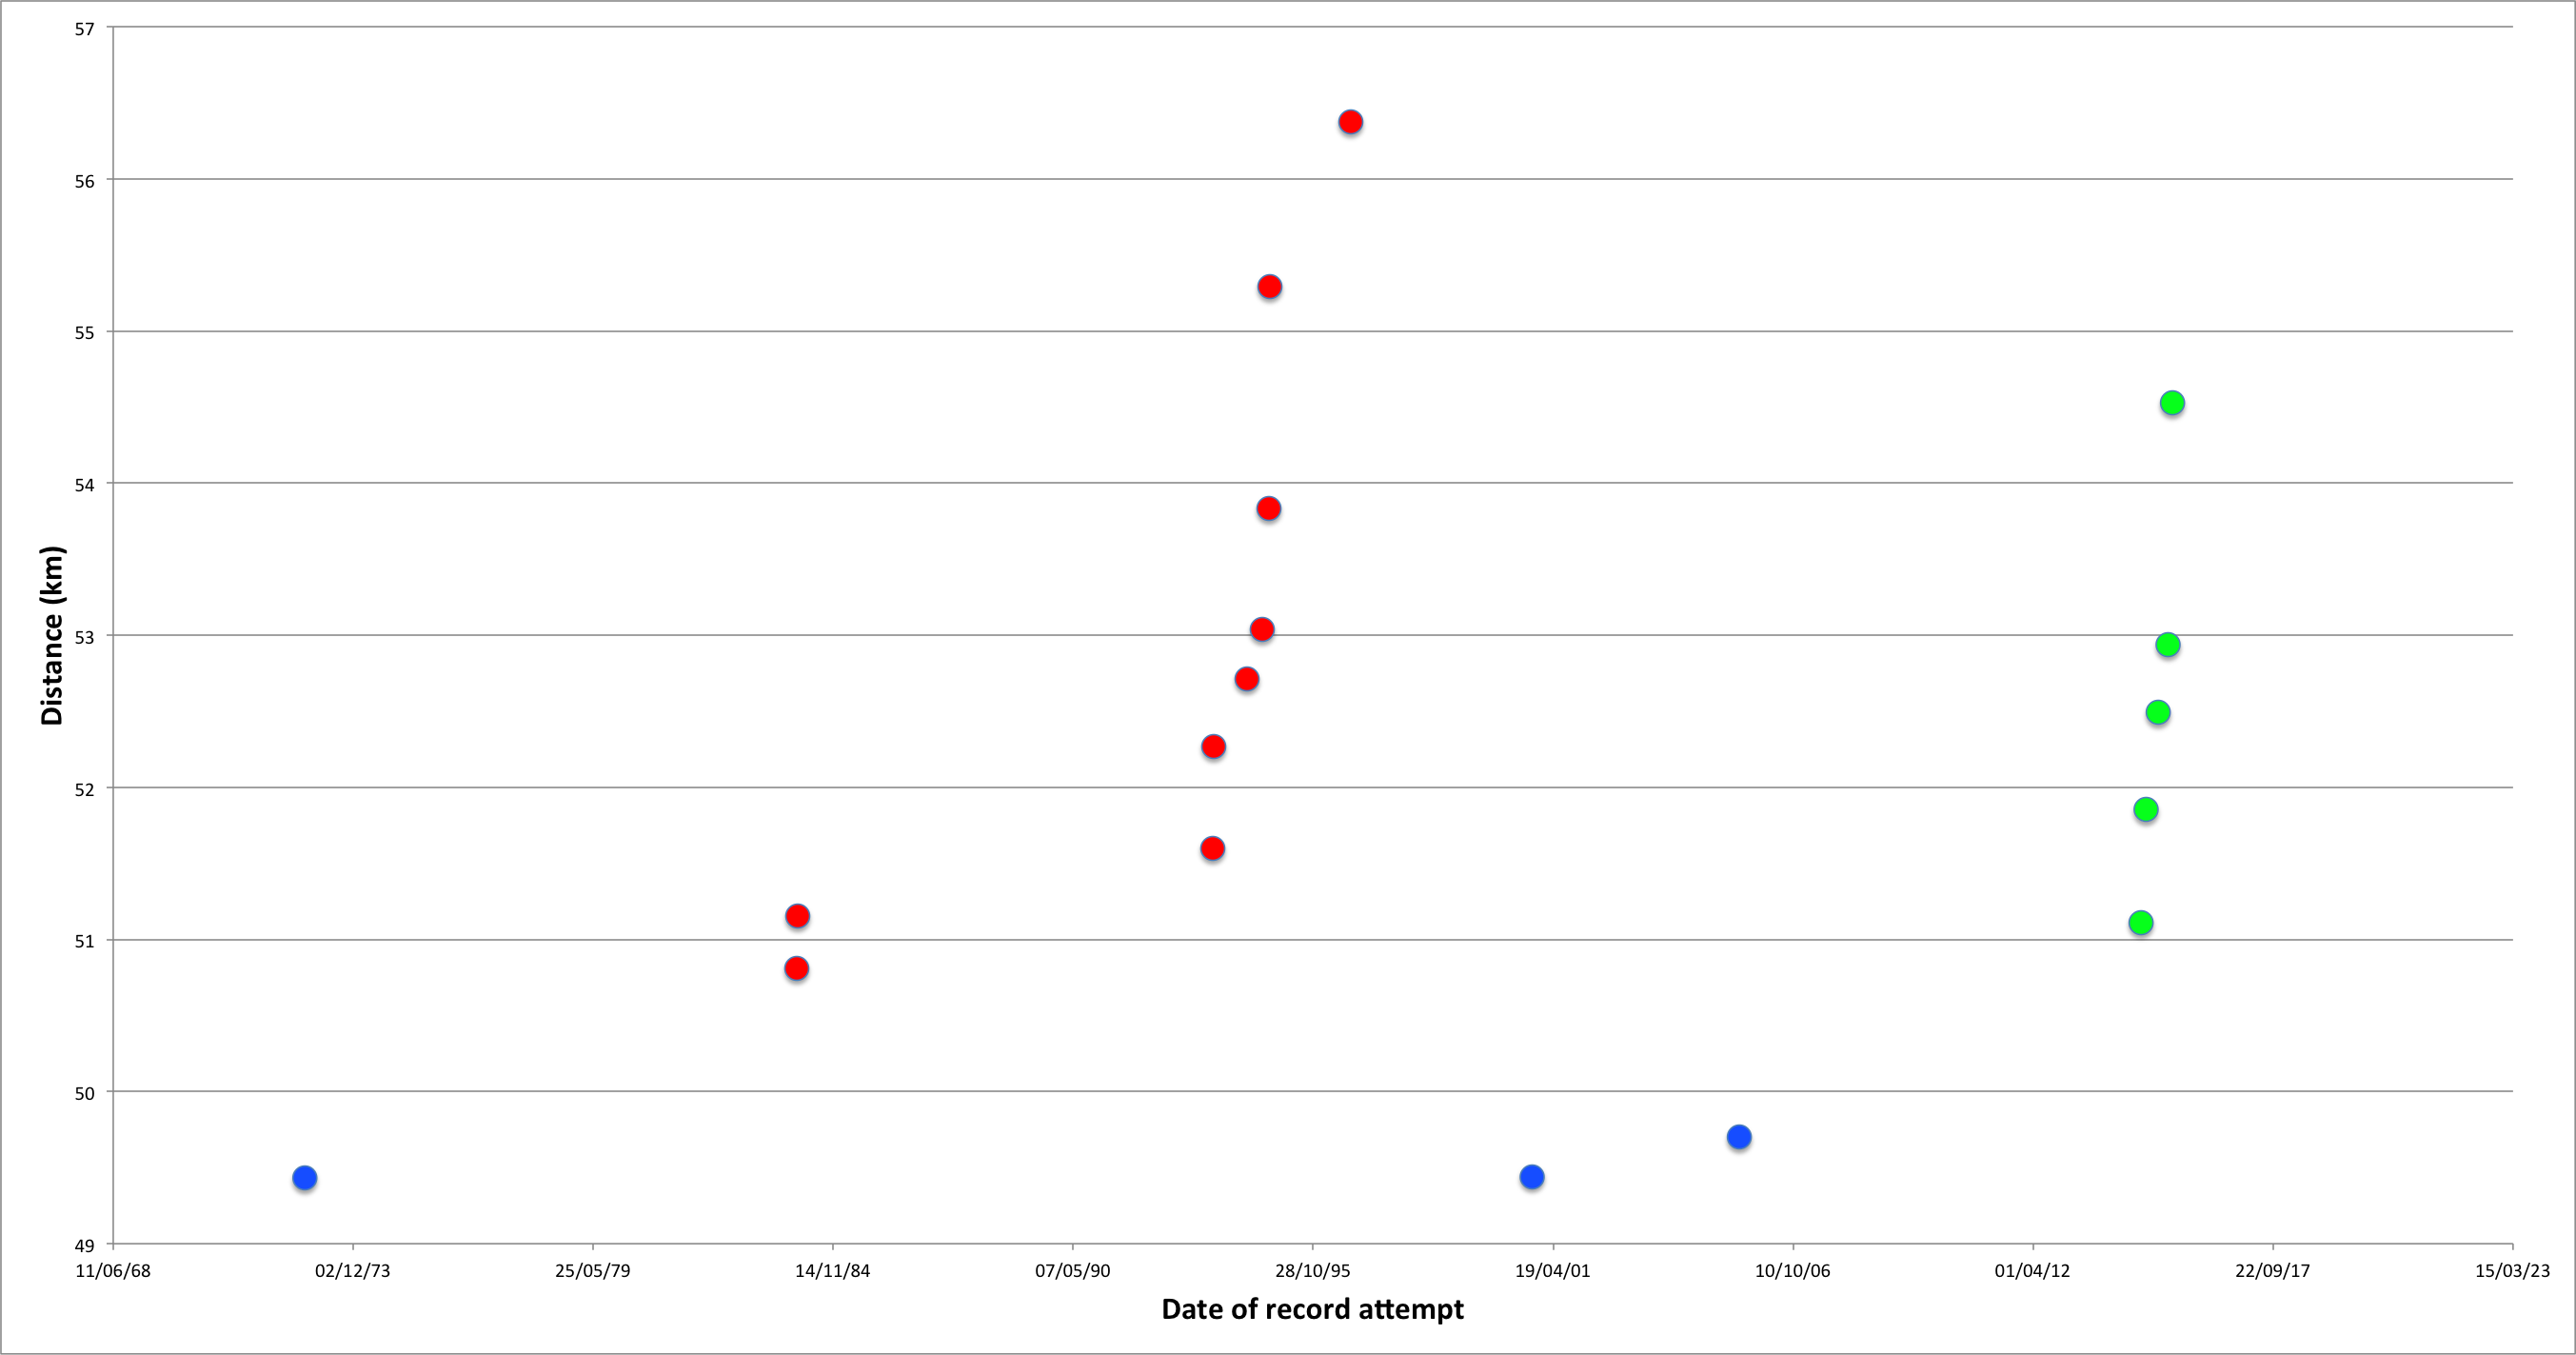 A dot plot showing the time and distance for various men's hour records.